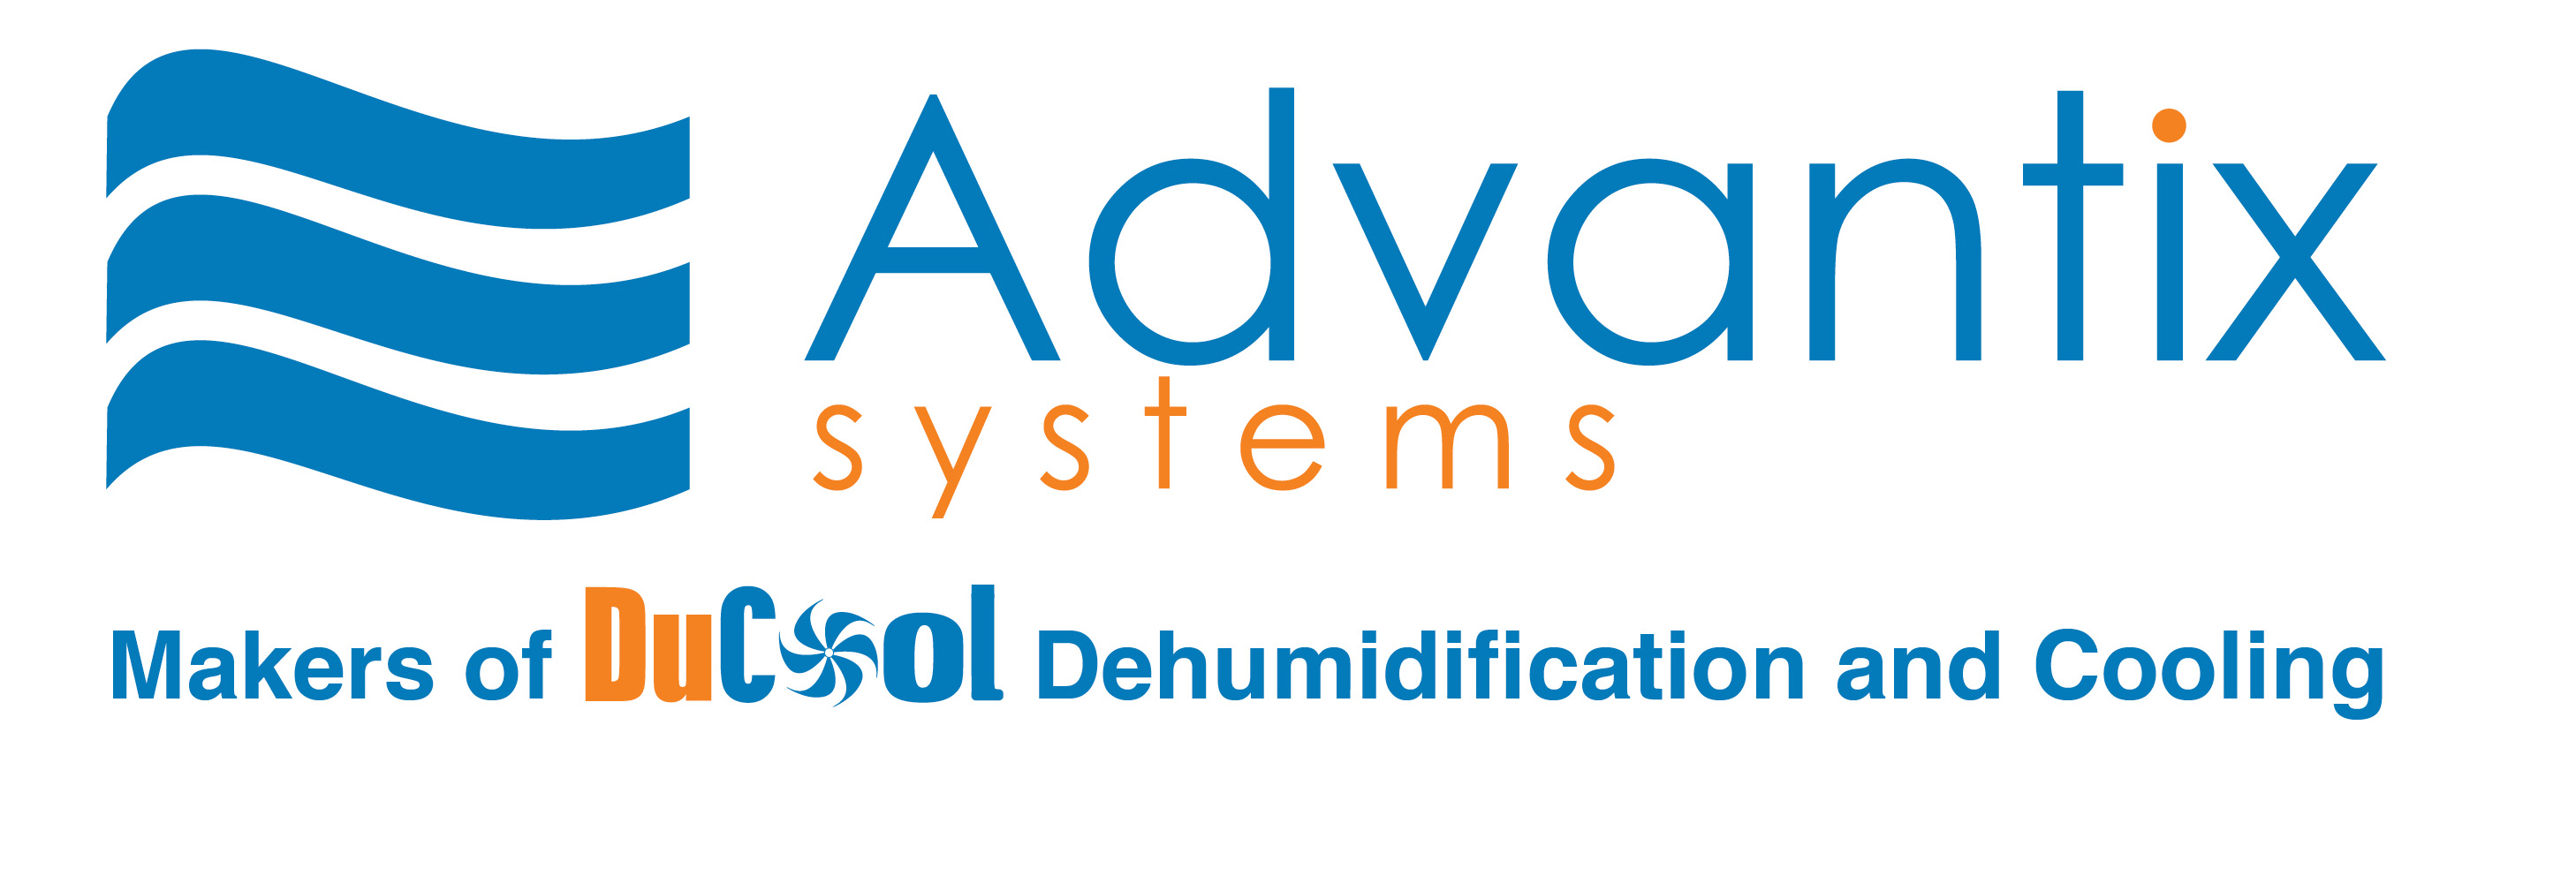 Advantix Systems